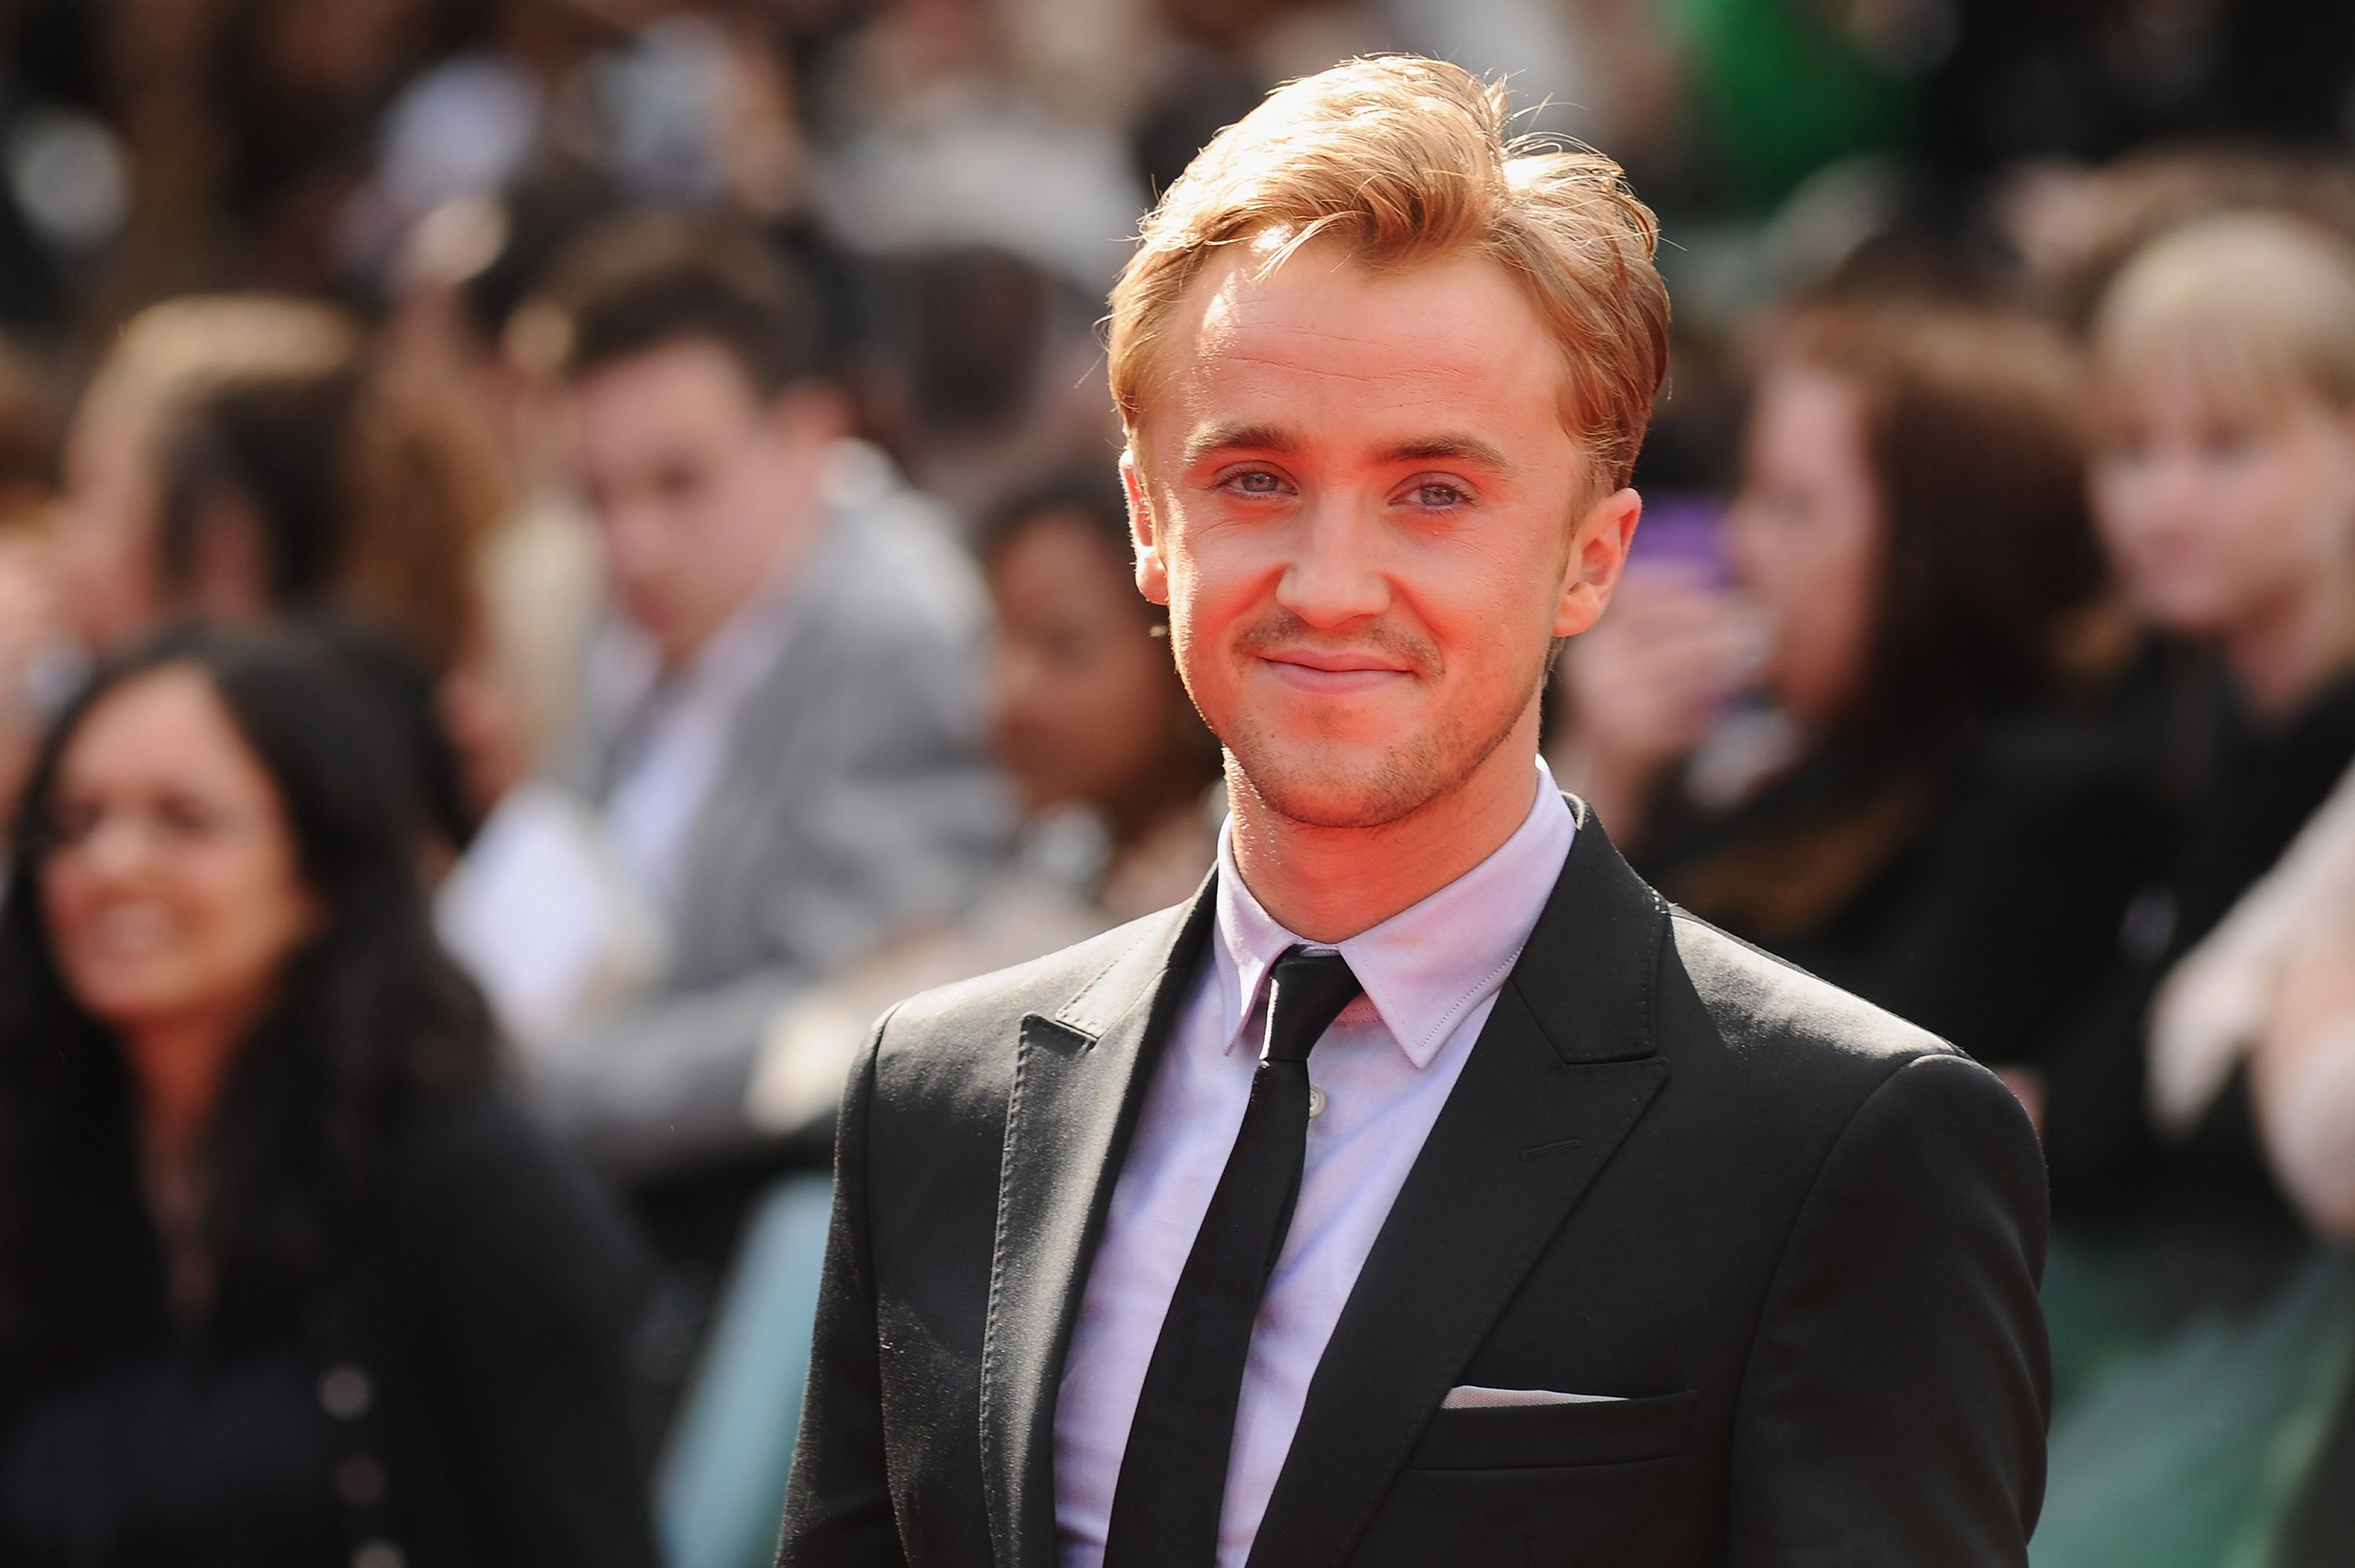 Actor Tom Felton attends the World Premiere of Harry Potter and The Deathly Hallows - Part 2 / Getty Images